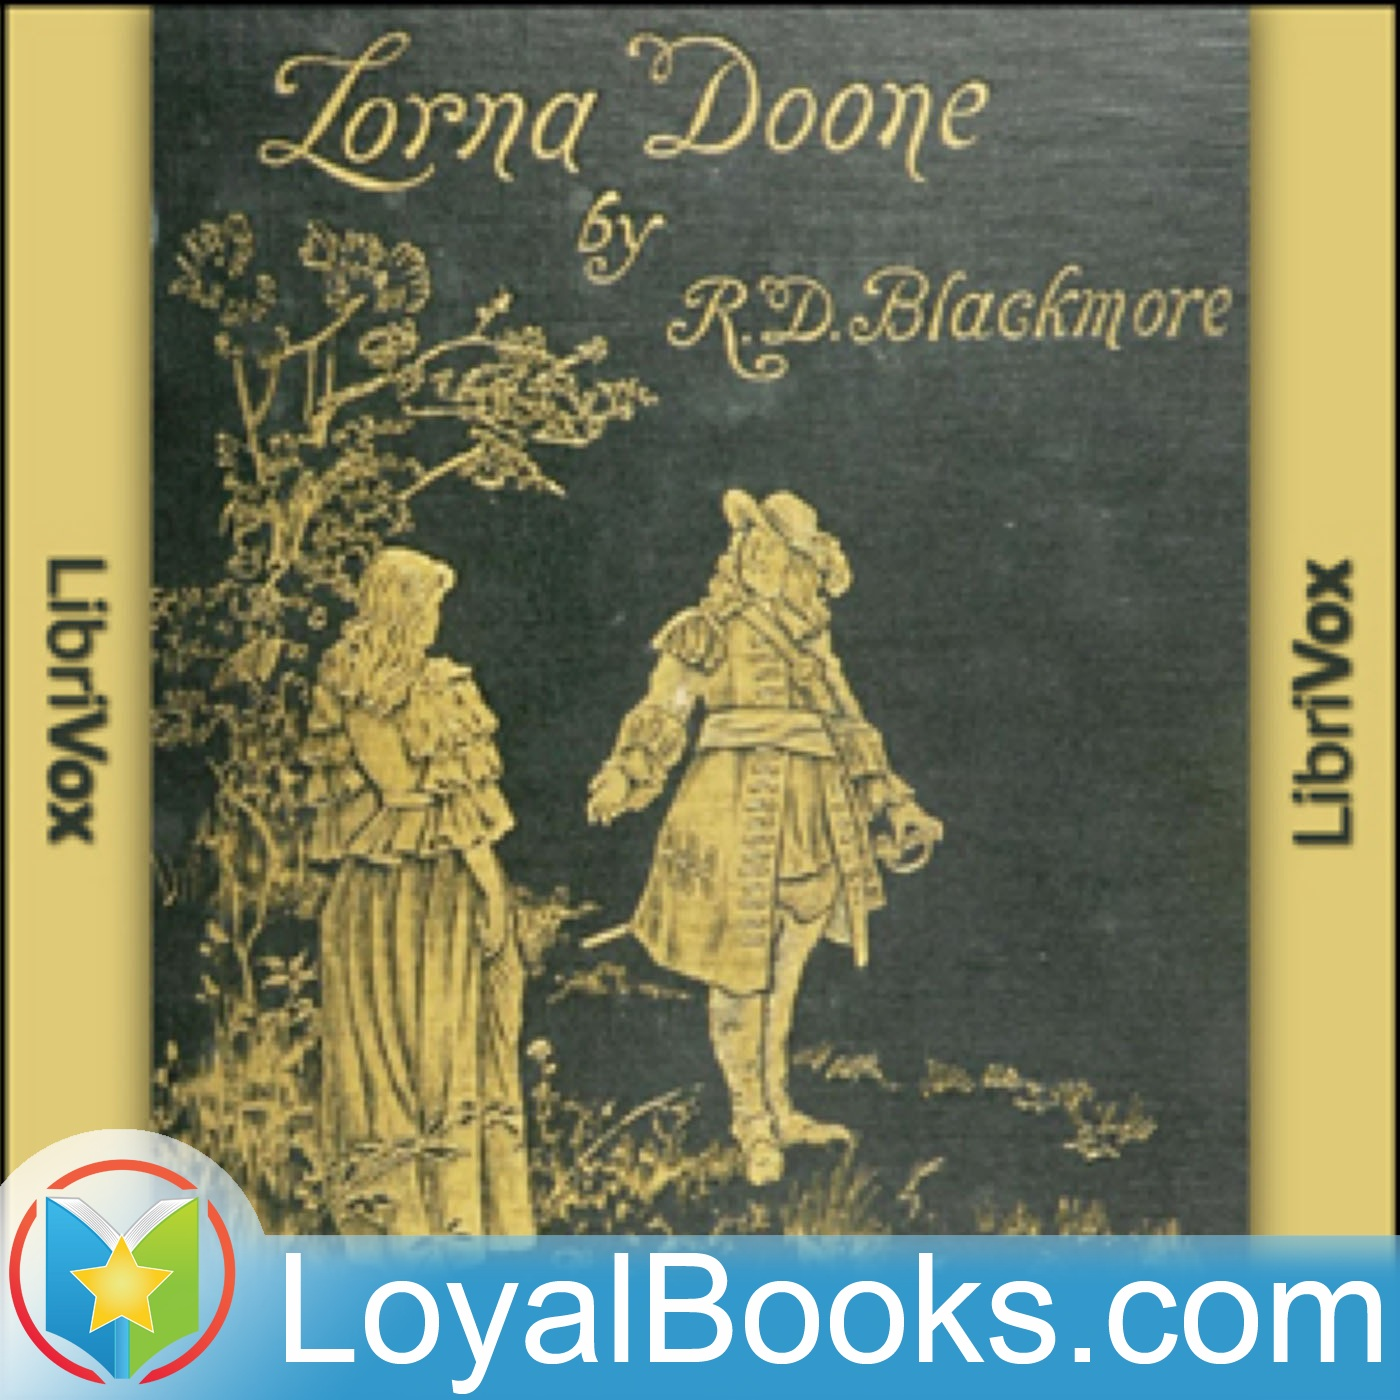 <![CDATA[Lorna Doone, a Romance of Exmoor by Richard D. Blackmore]]>